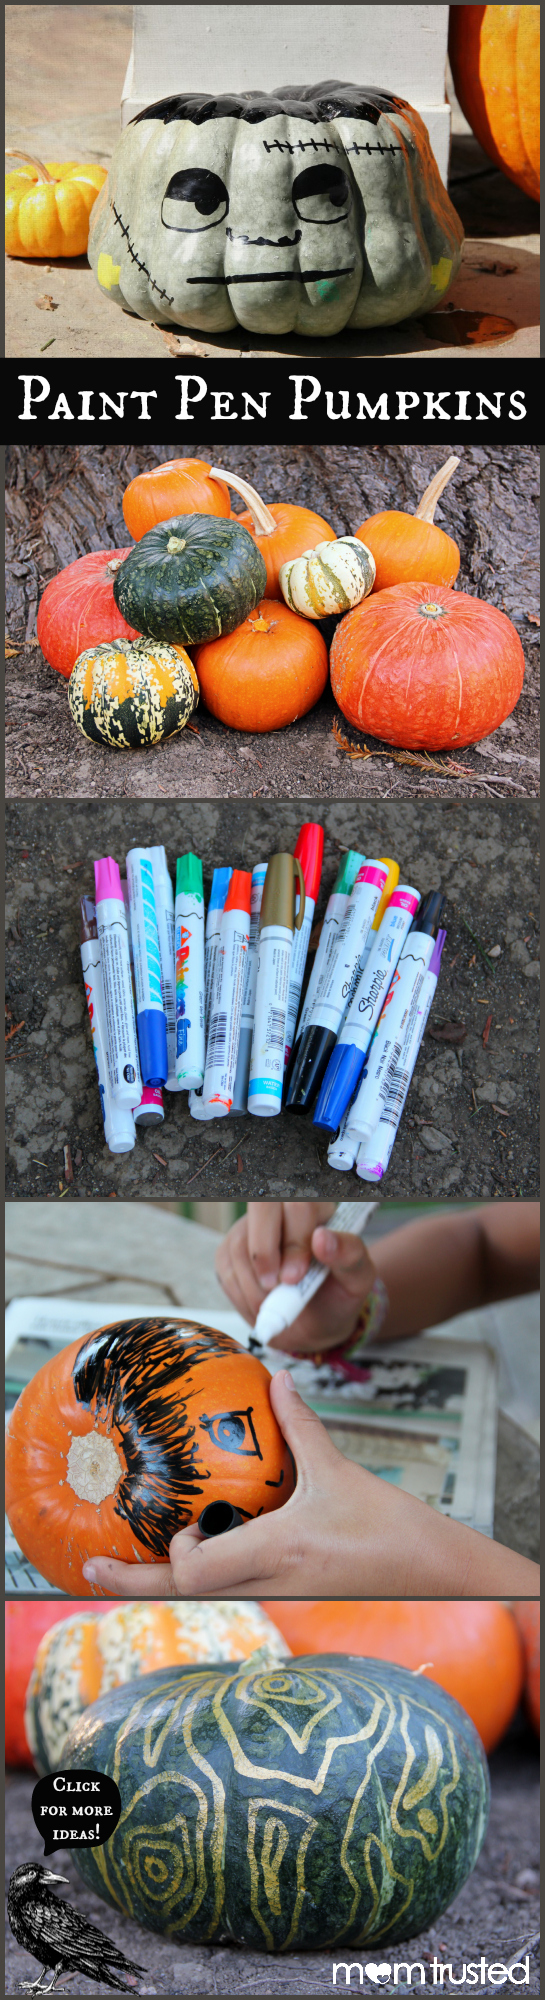 Paint Pen Pumpkin Decorating paint pen pumpkins by Mom Trusted title